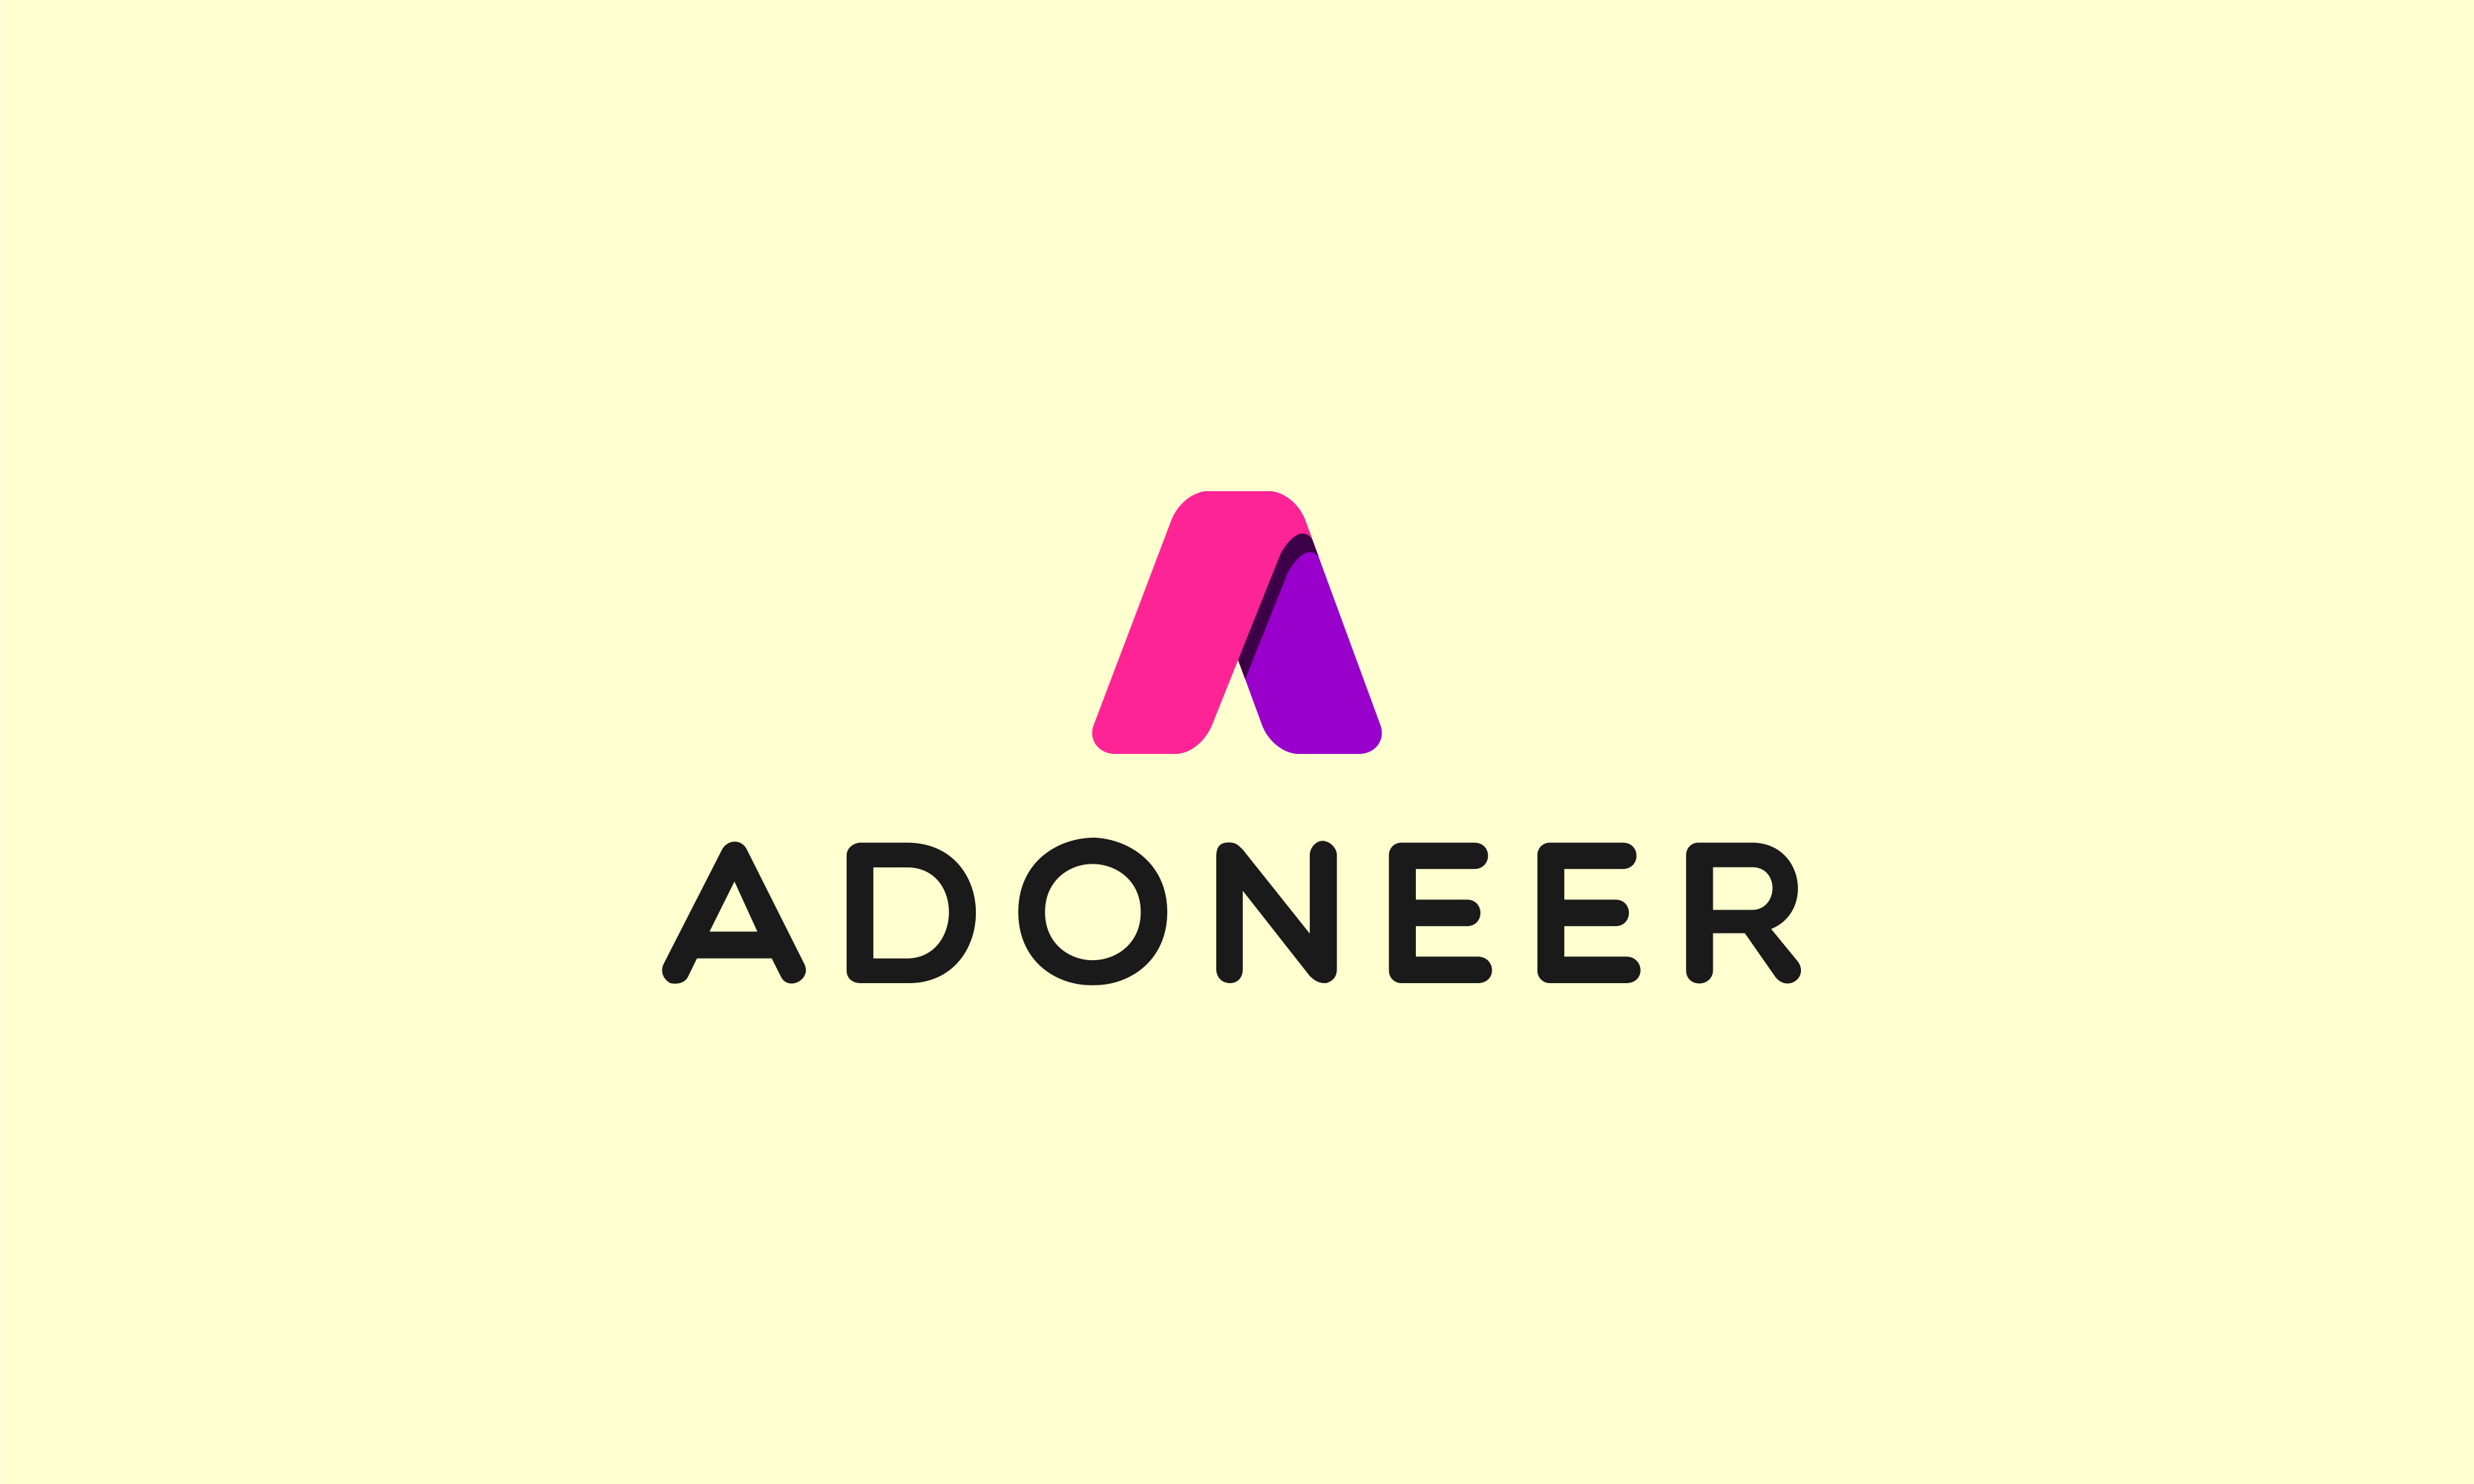 Adoneer - Marketing business name for sale